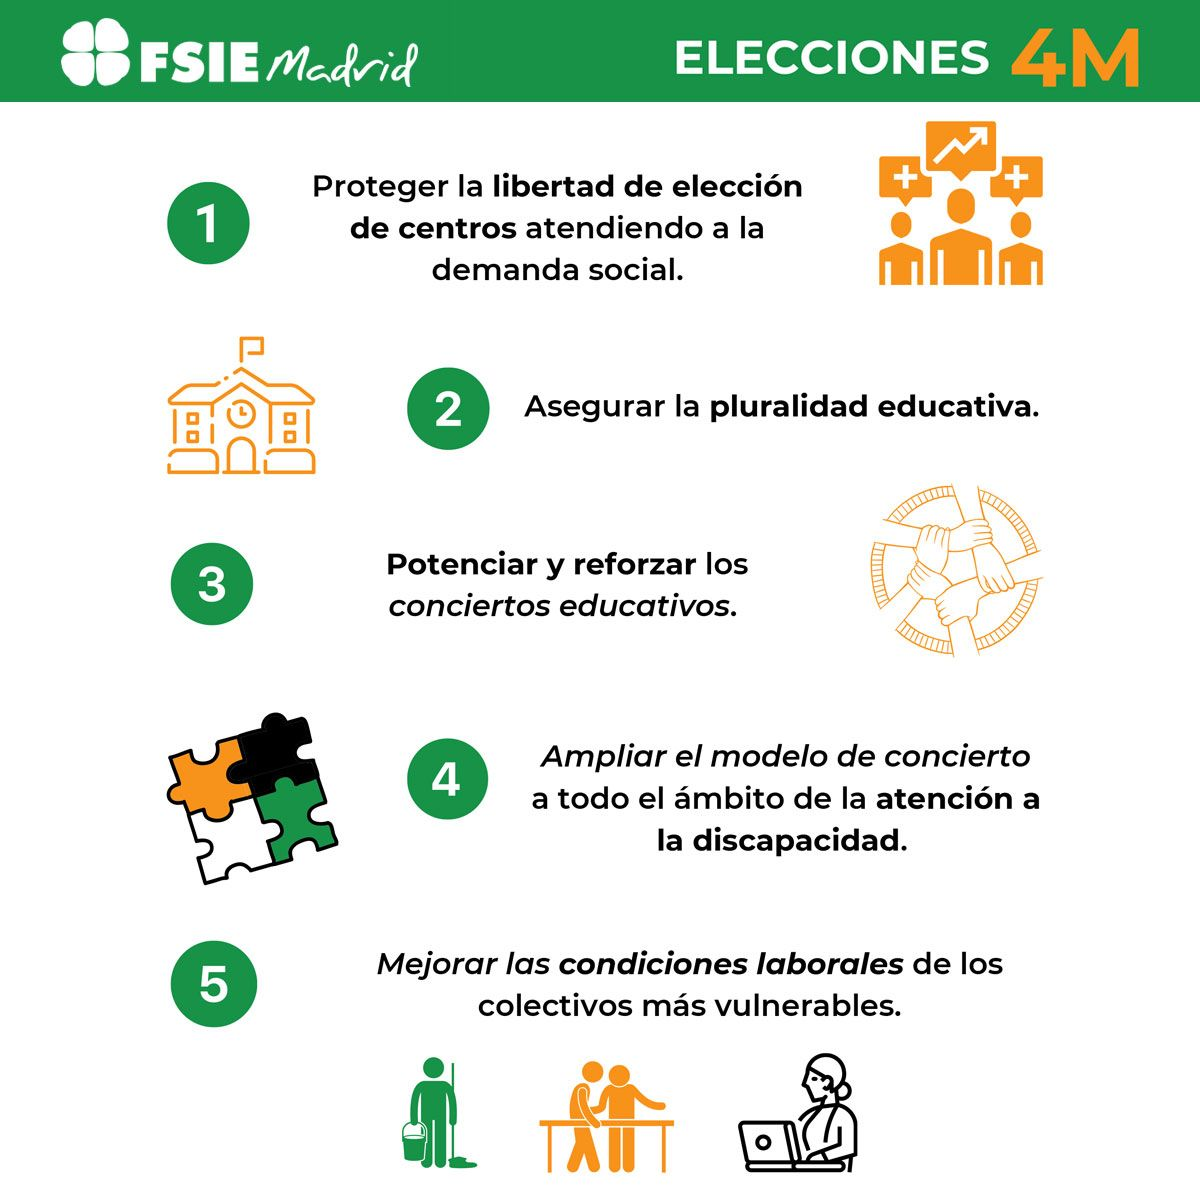 FSIE MADRID